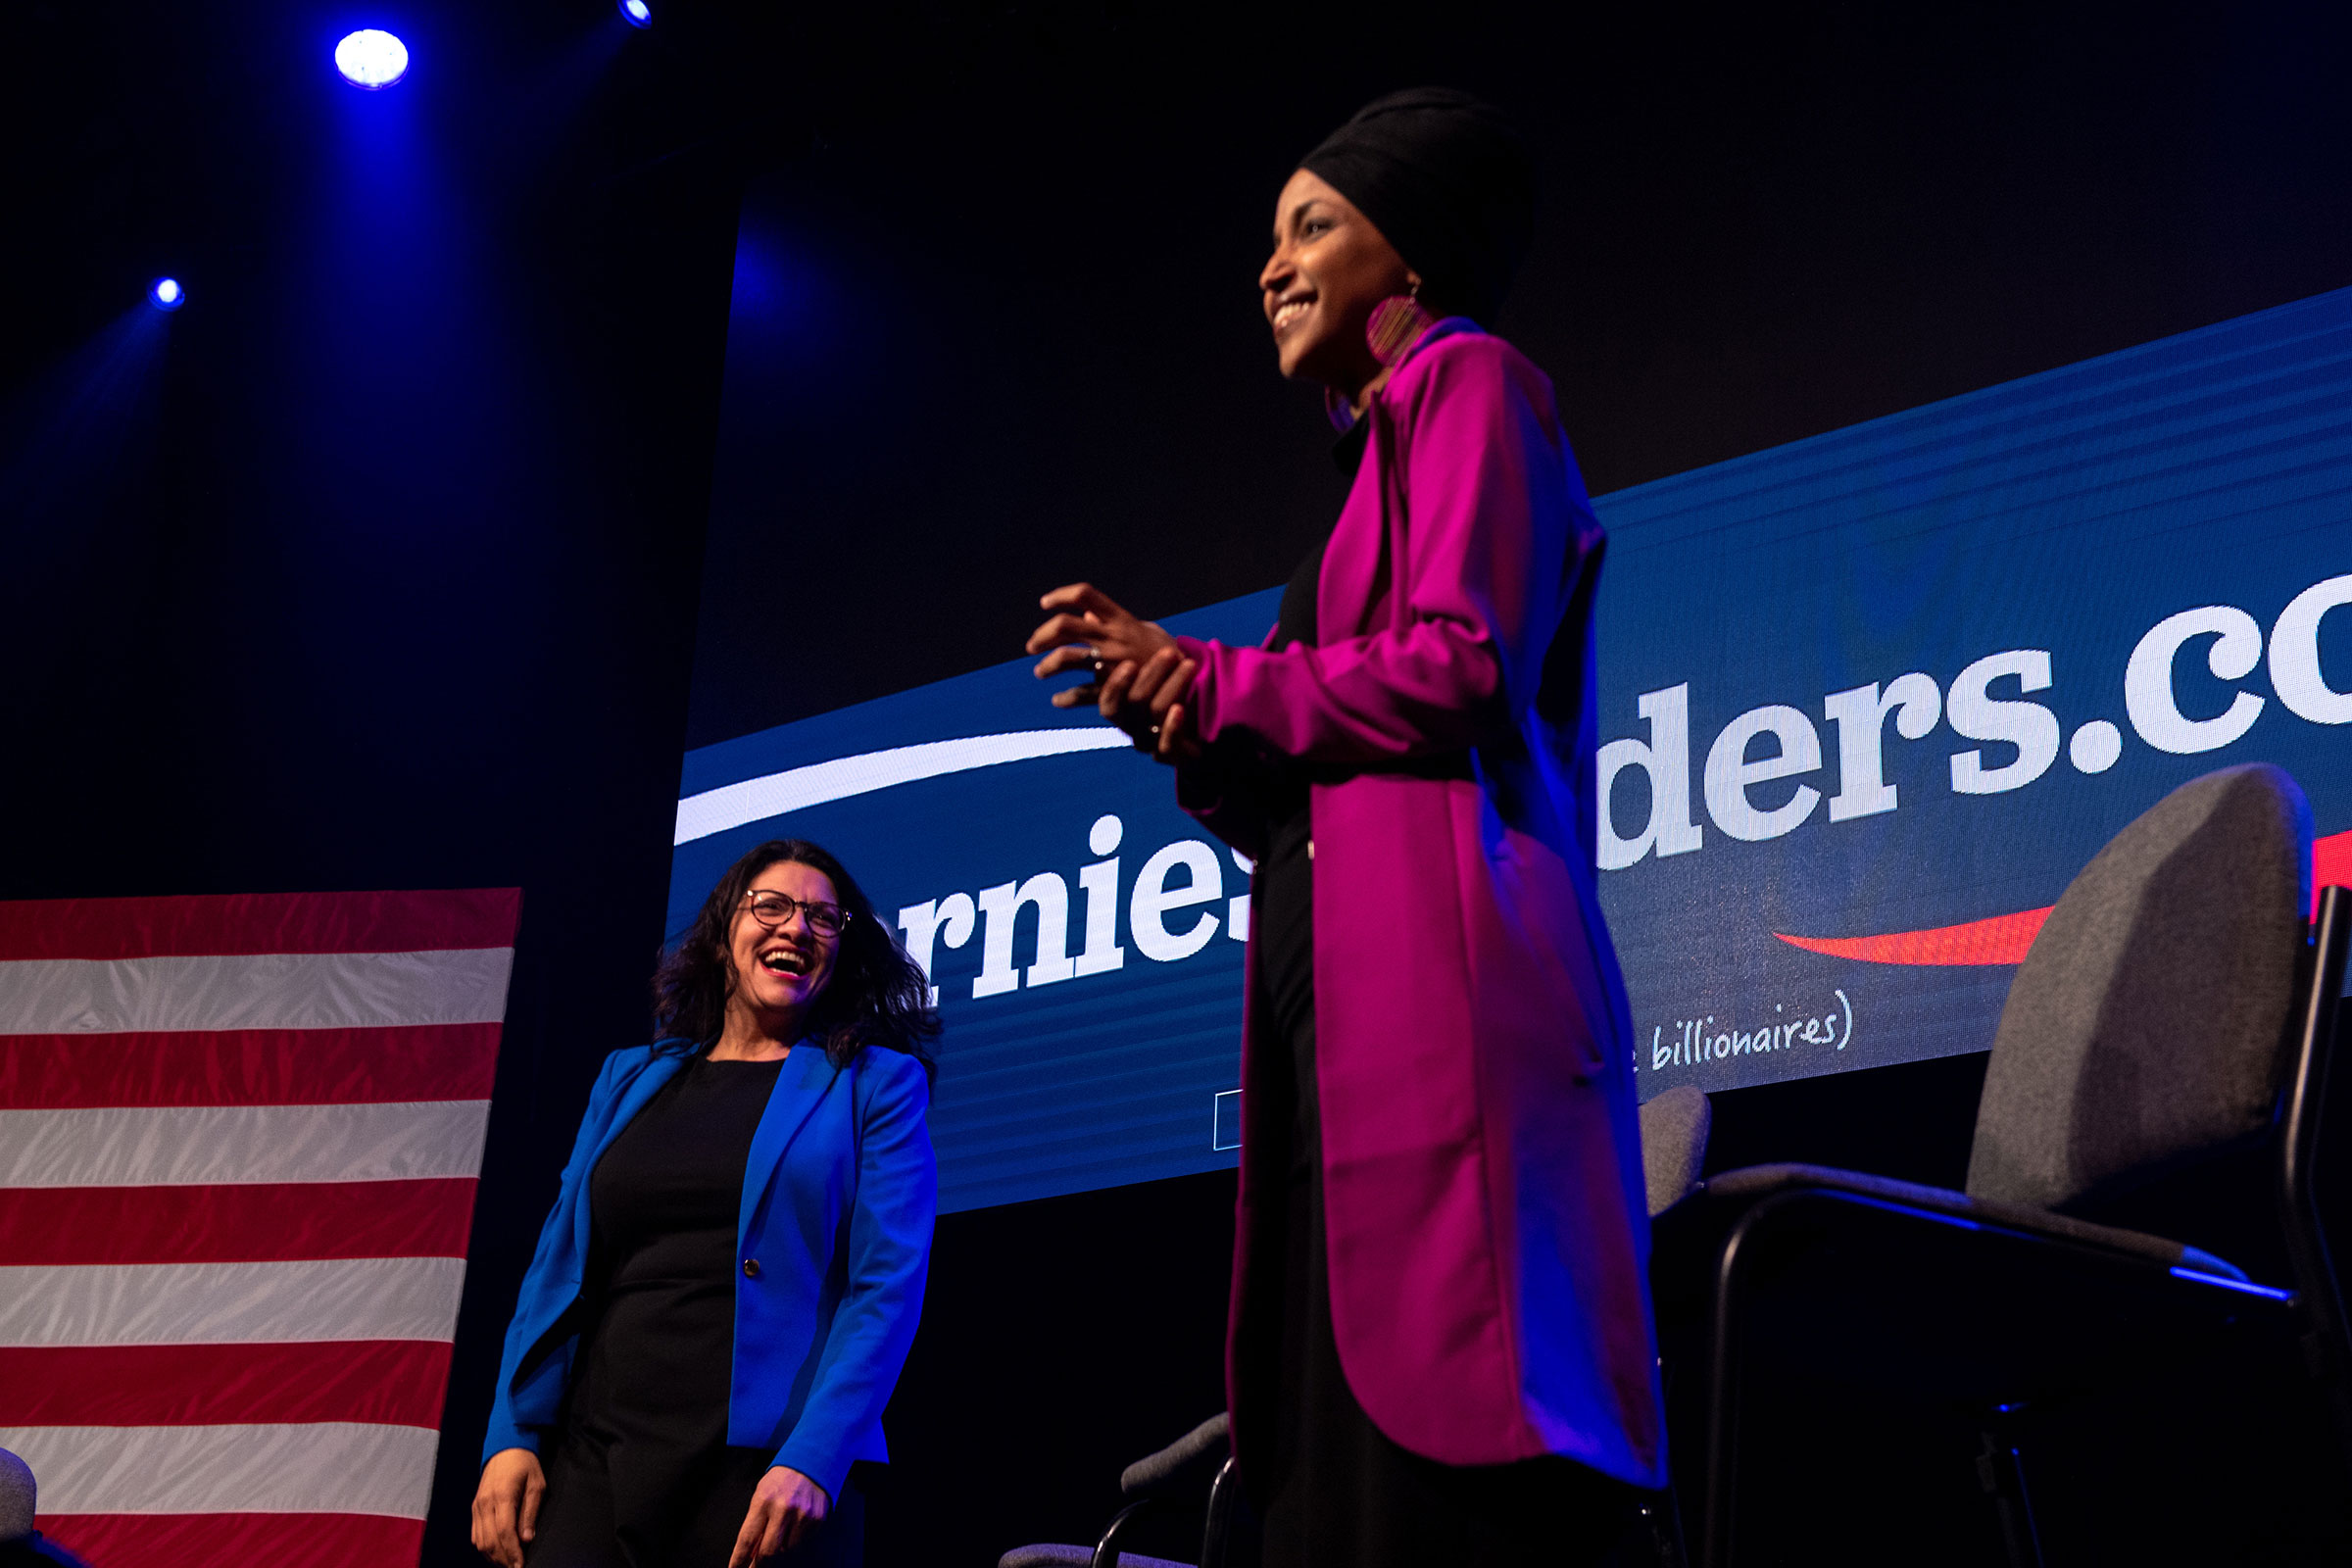 Reps. Rashida Tlaib and Ilhan Omar hold a campaign rally for Sen. Bernie Sanders in Clive, Iowa, Jan. 31, 2020.